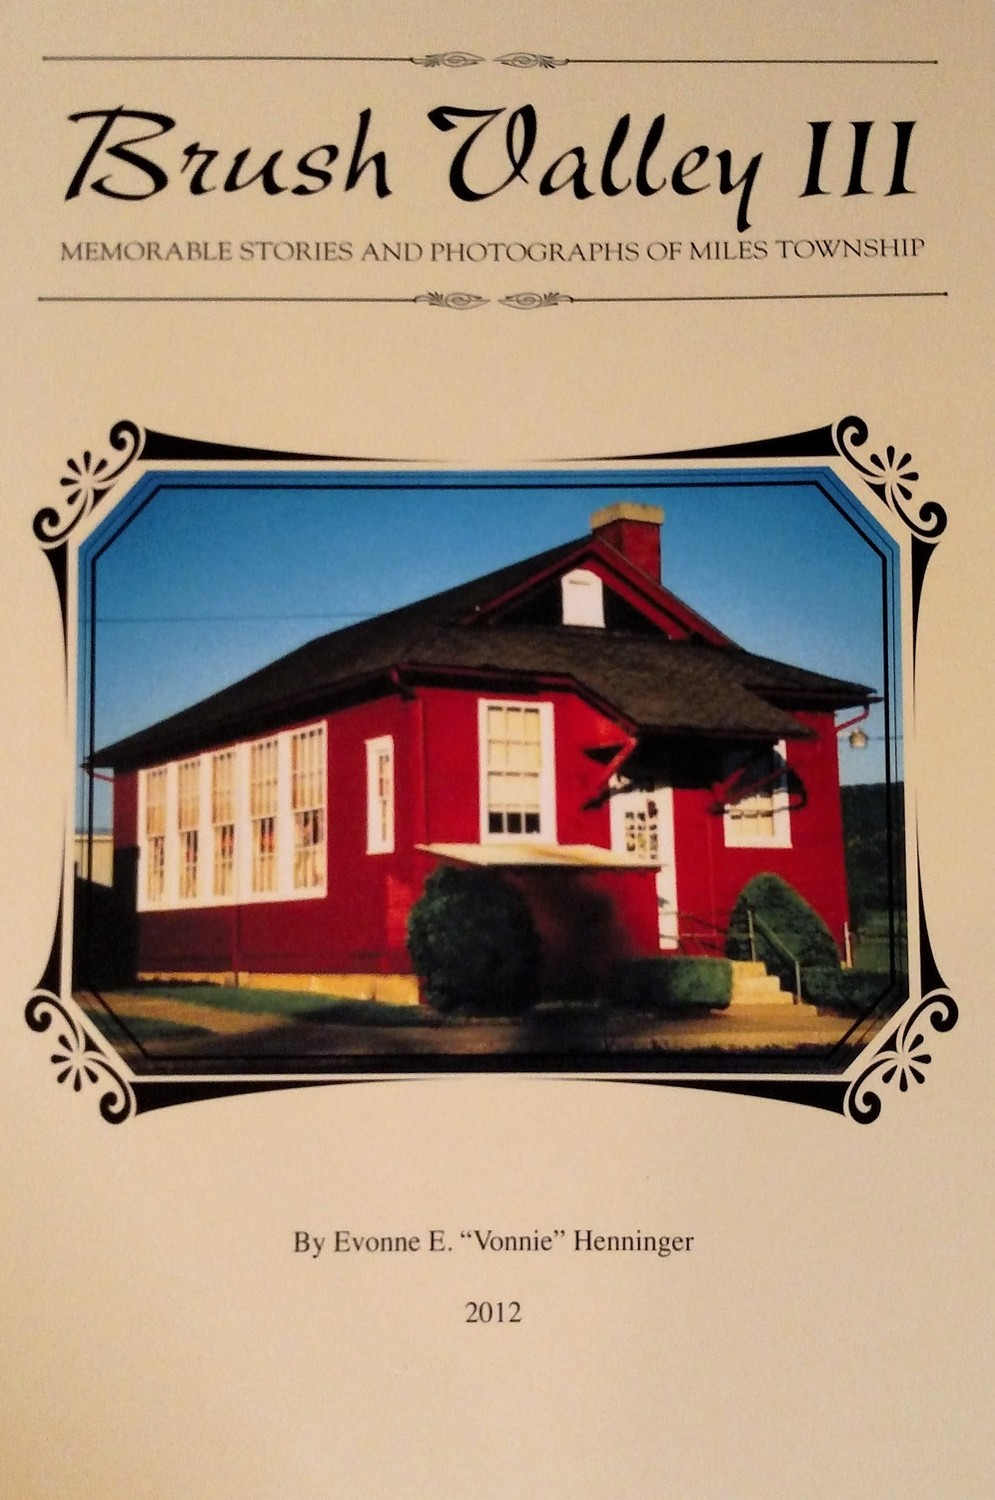 Brush Valley III: Memorable Stories & Photographs of Miles Township